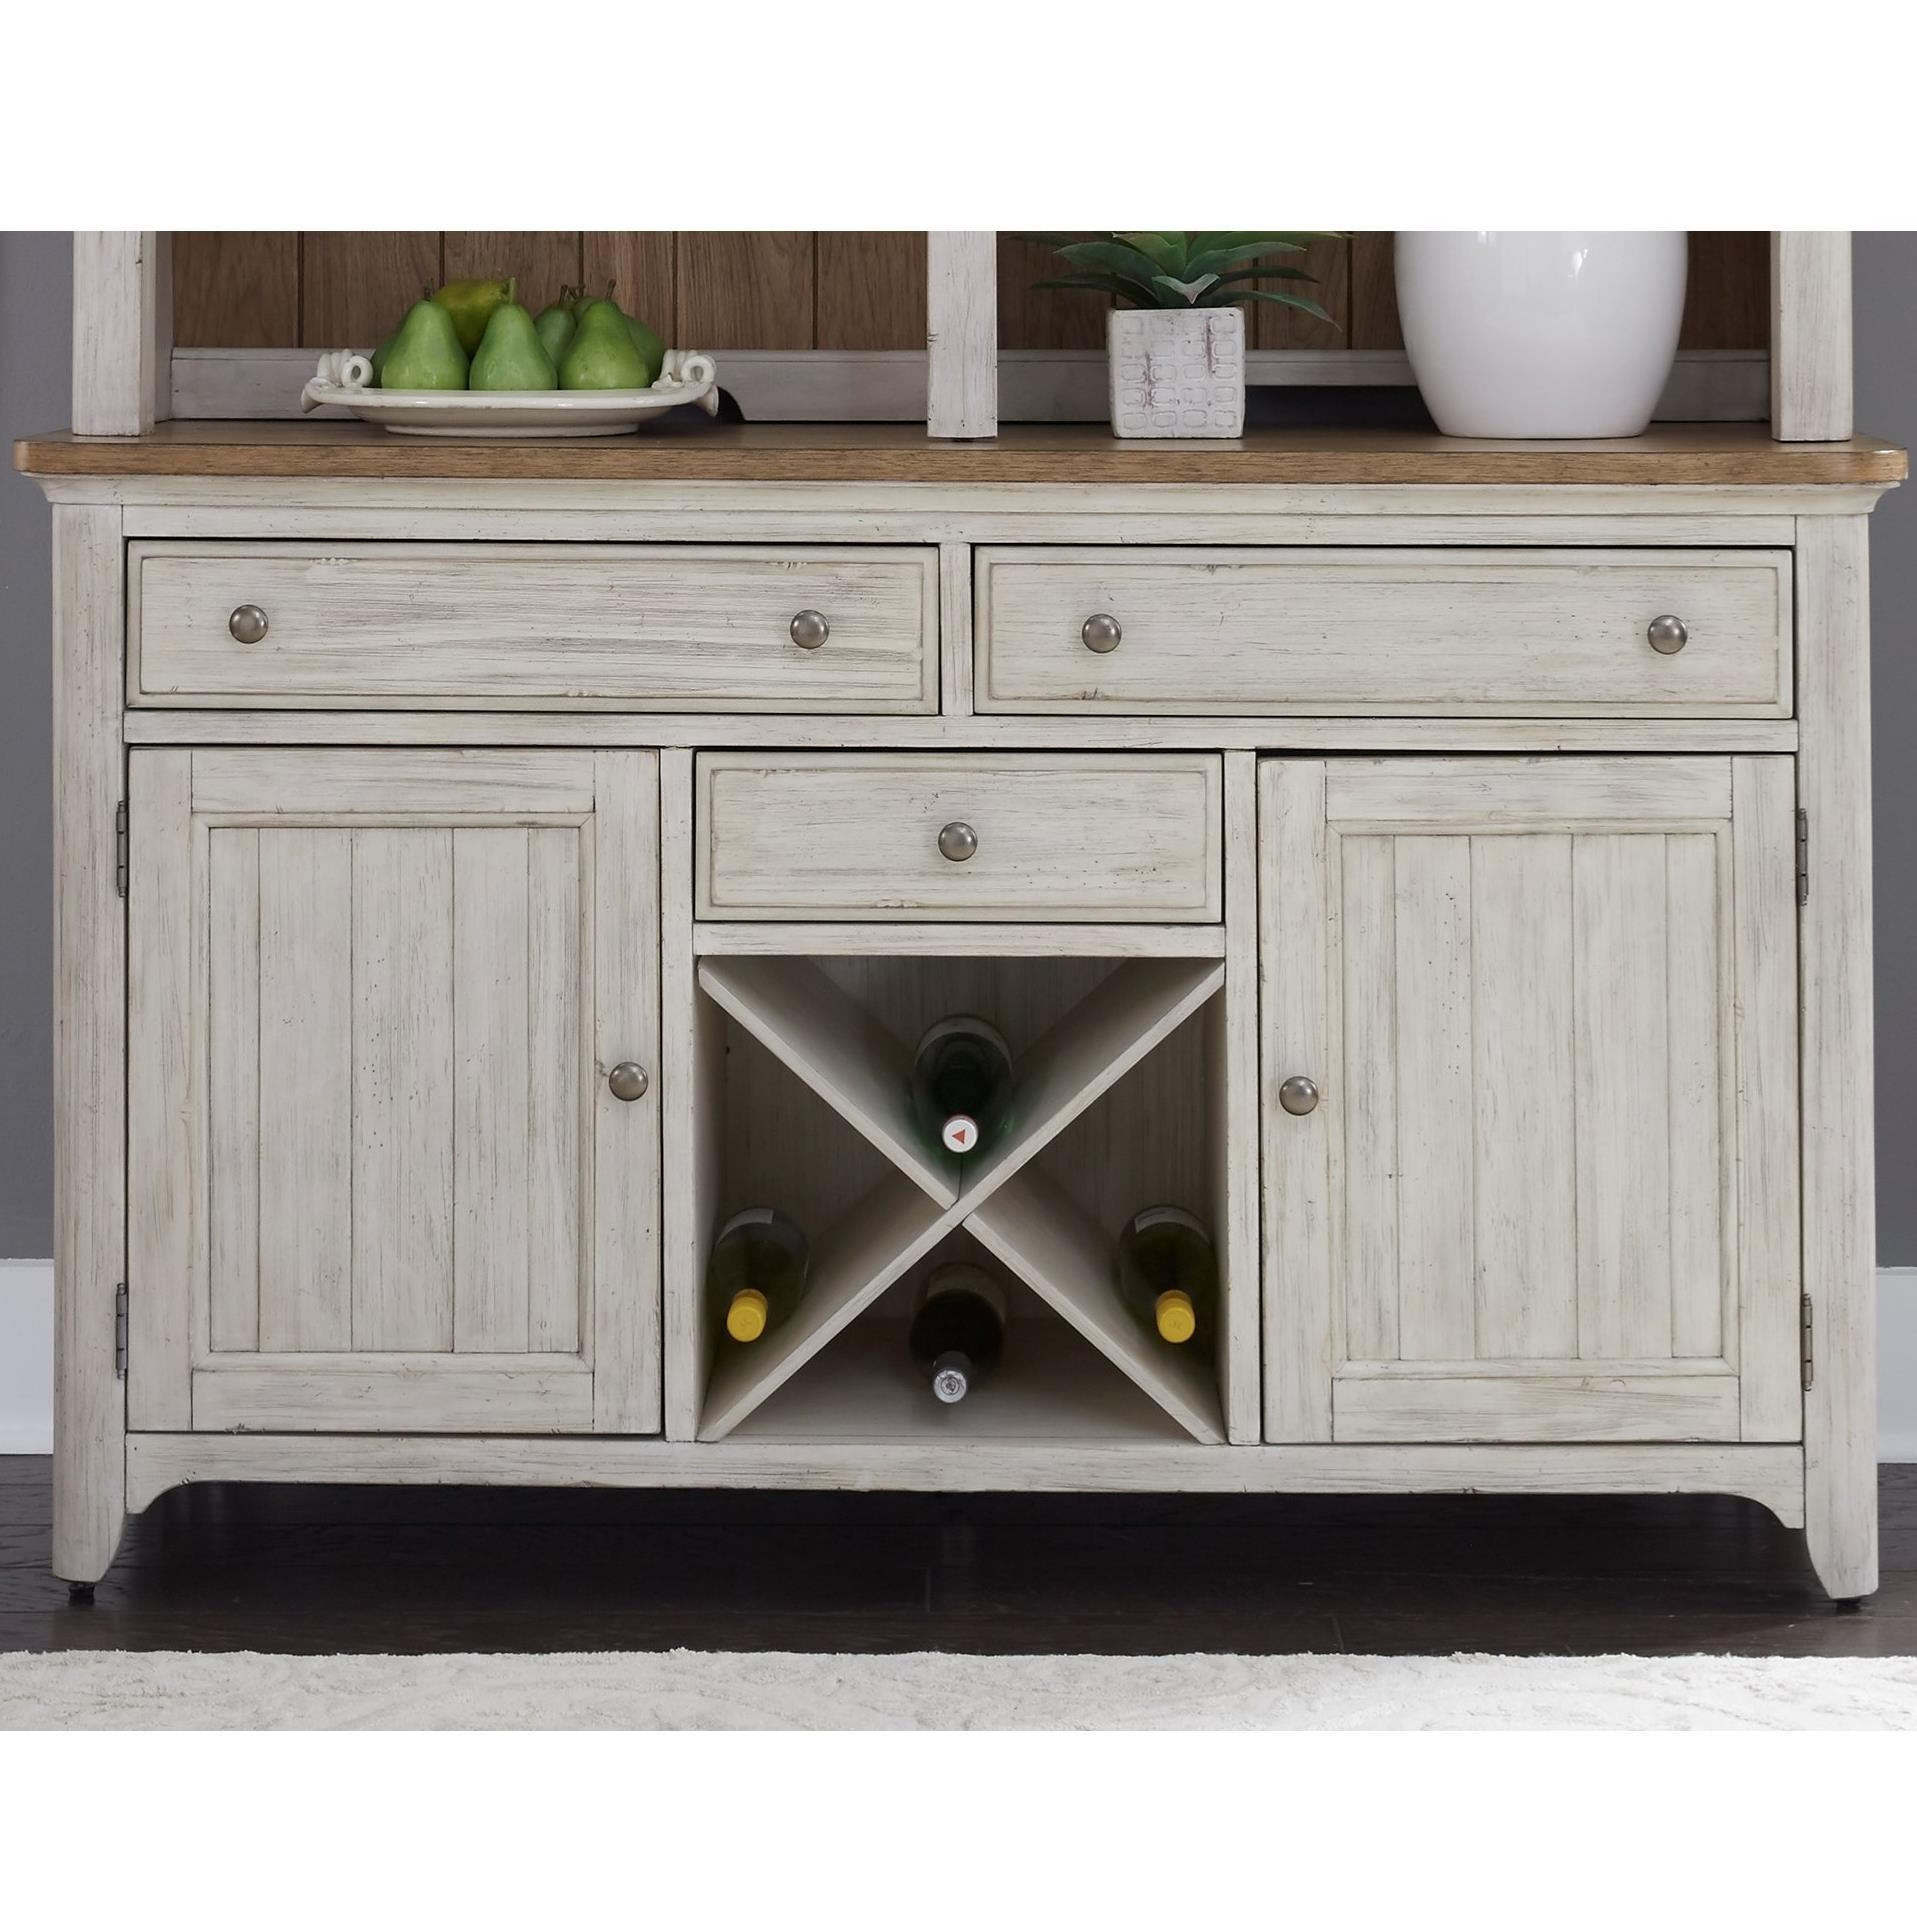 Incroyable Liberty Furniture Farmhouse Reimagined Relaxed Vintage Buffet With  Removable Wine Storage Planks